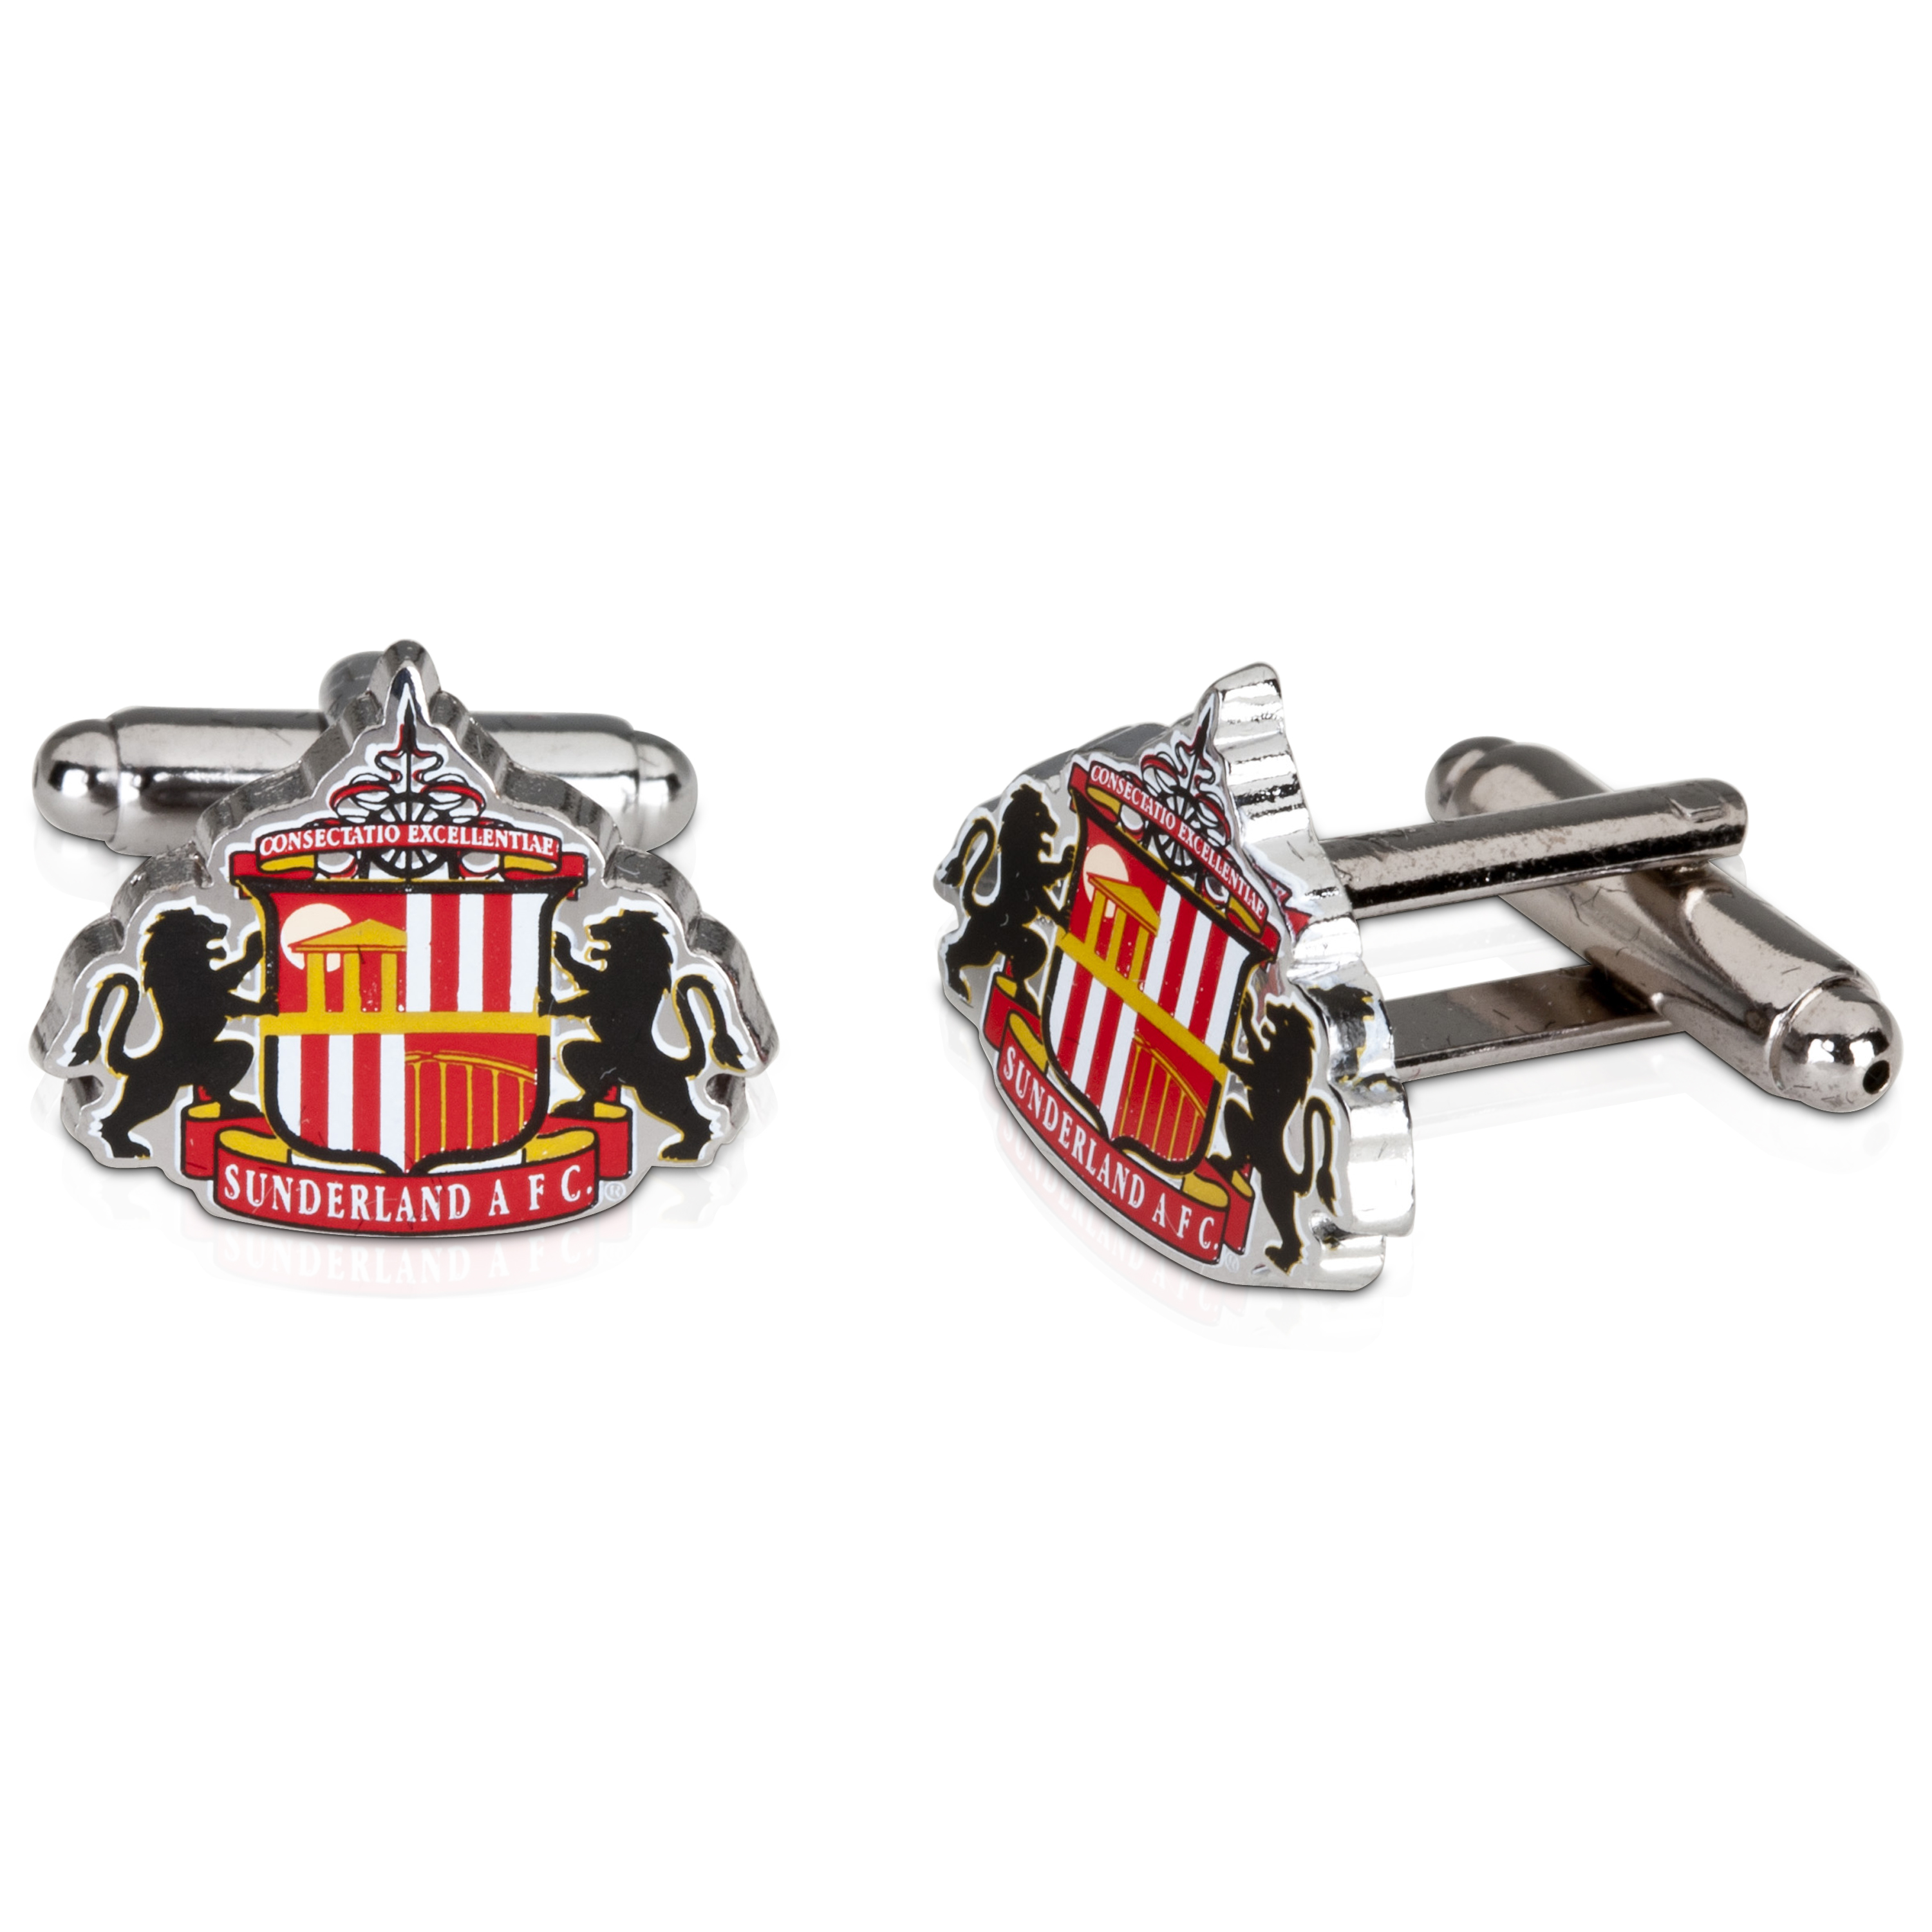 Sunderland Colour Crest Cufflinks